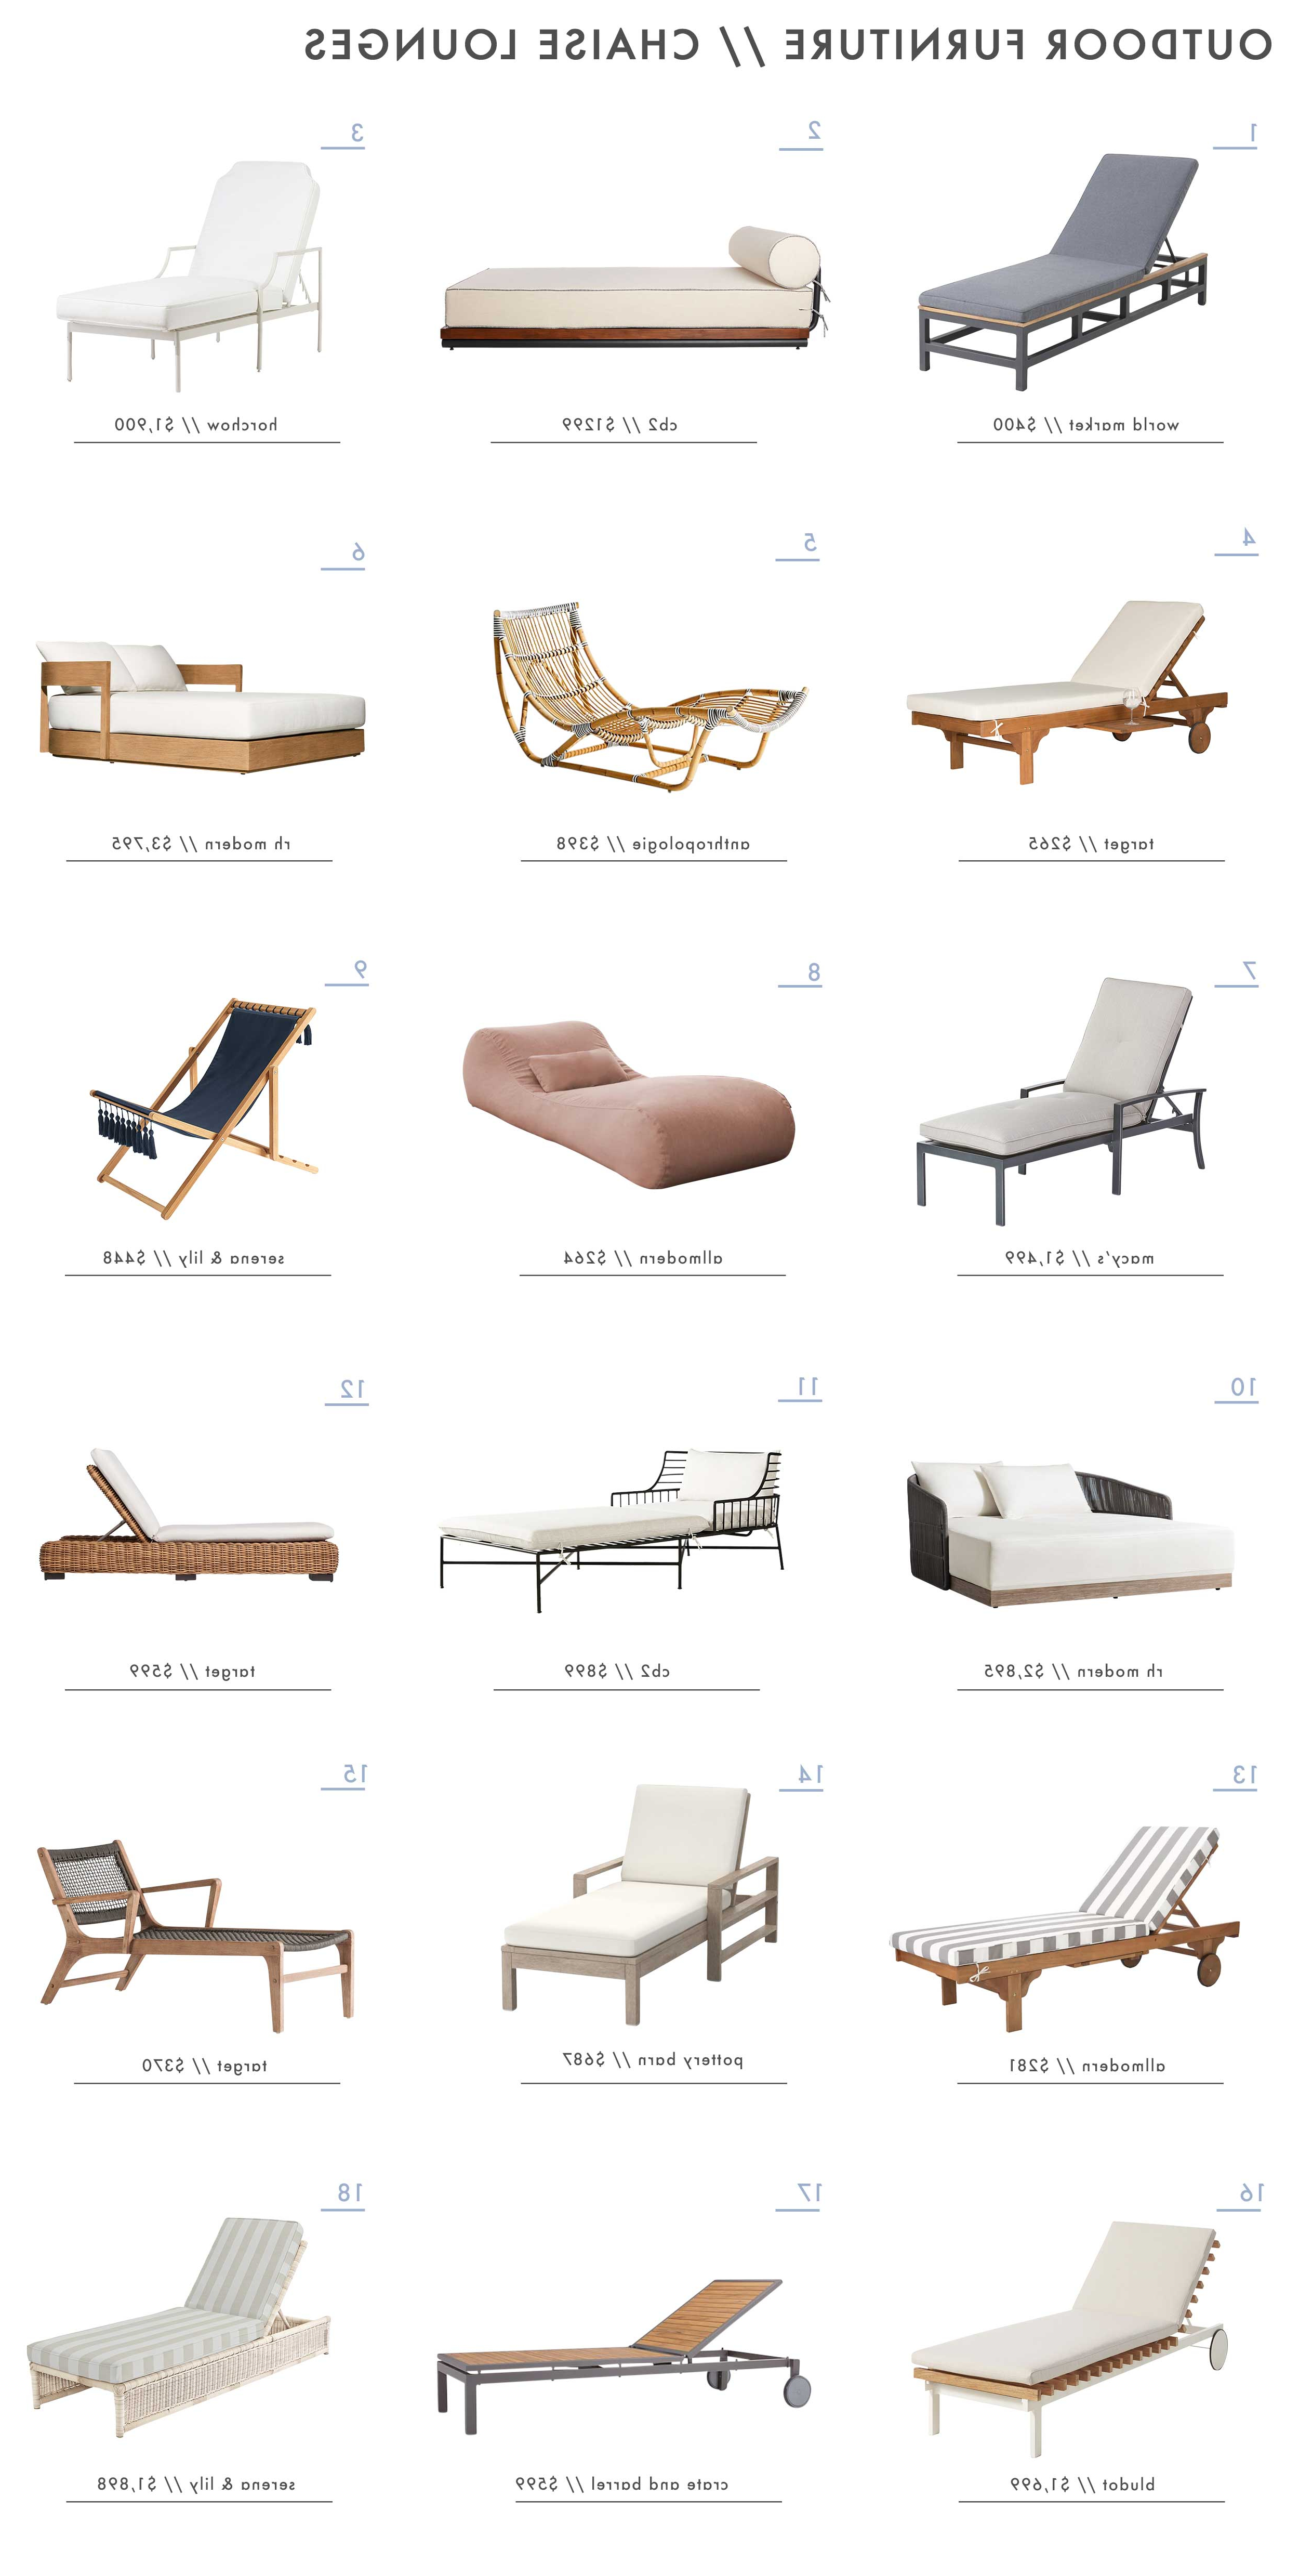 Popular 130+ Of Our Favorite Patio & Outdoor Furniture Picks To Get Pertaining To Modern Home Wailea Woven Rattan Loungers (View 17 of 25)